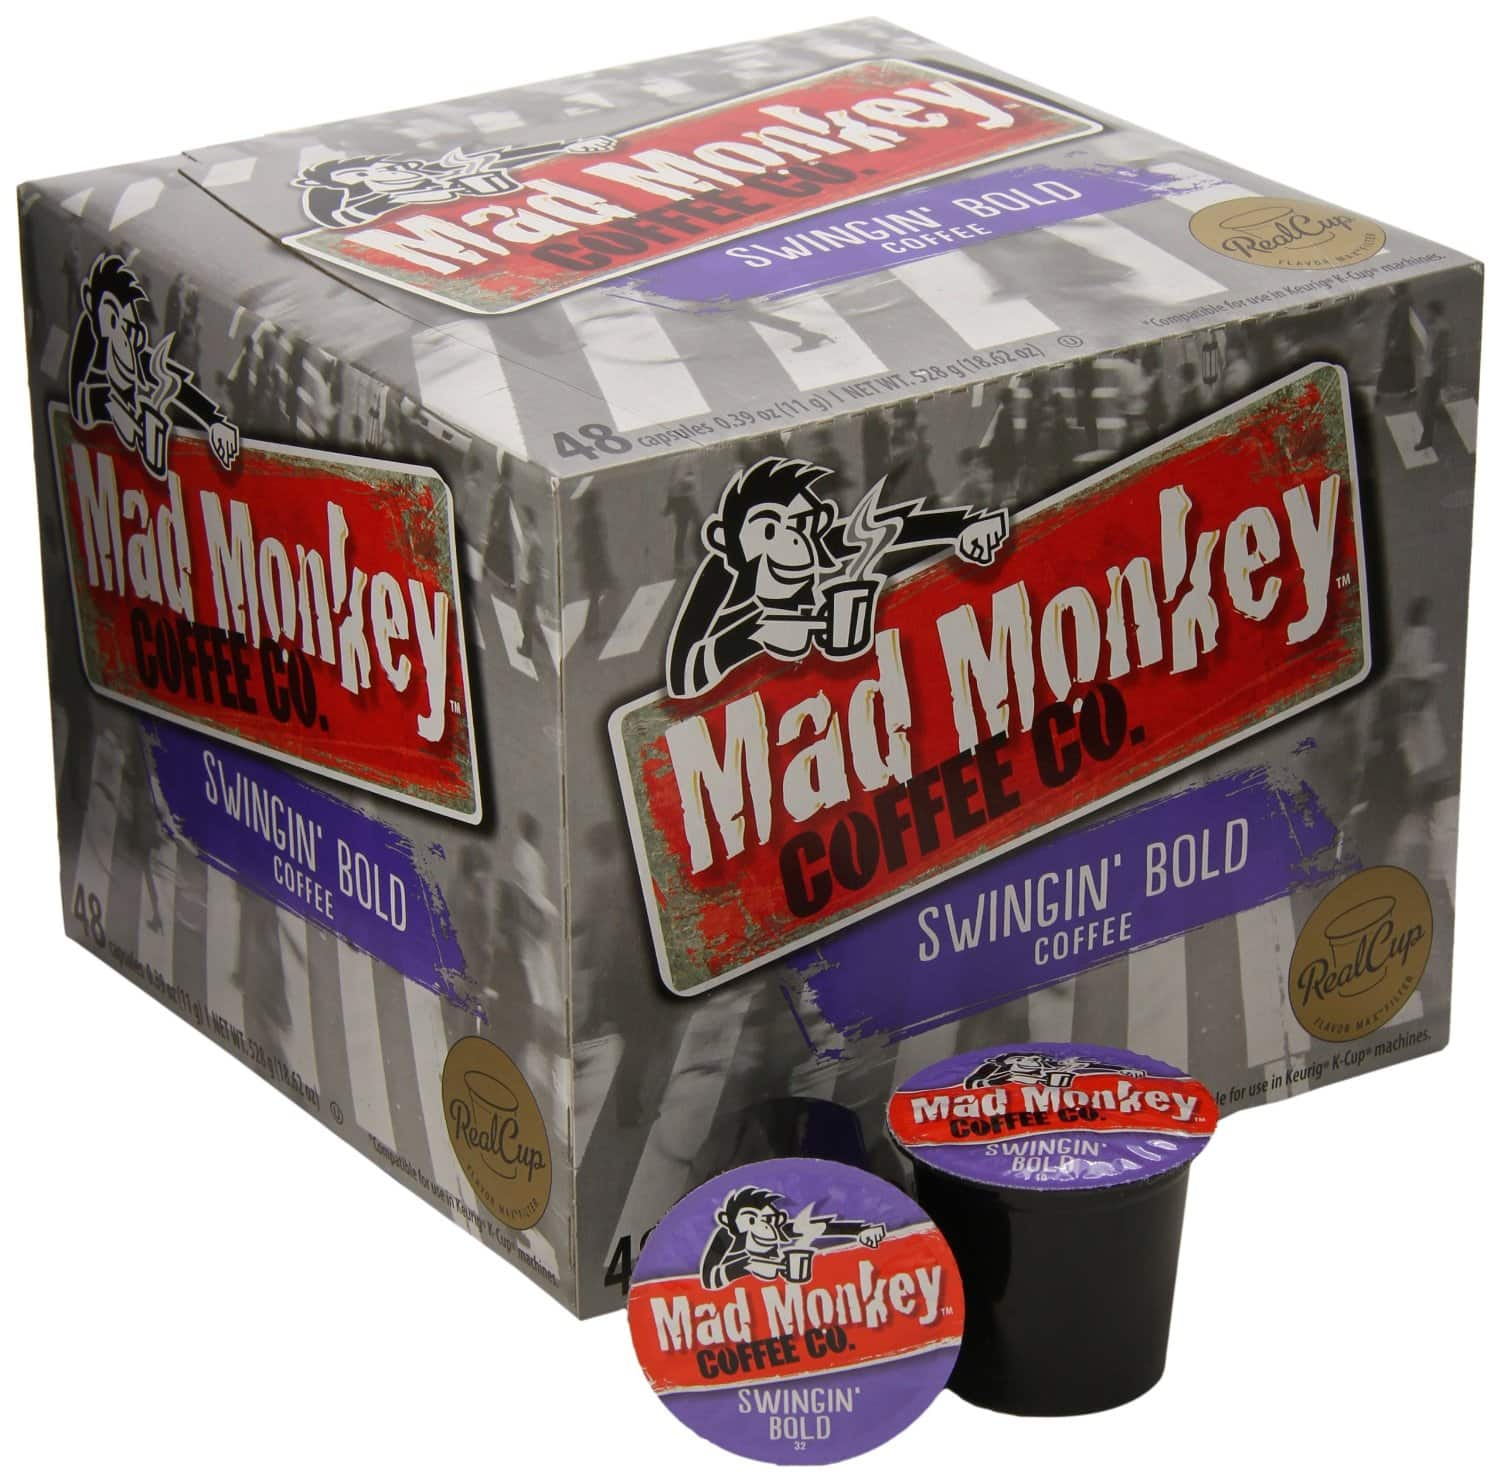 48-Count Mad Monkey Coffee RealCup K-Cups  $15 + Free Shipping